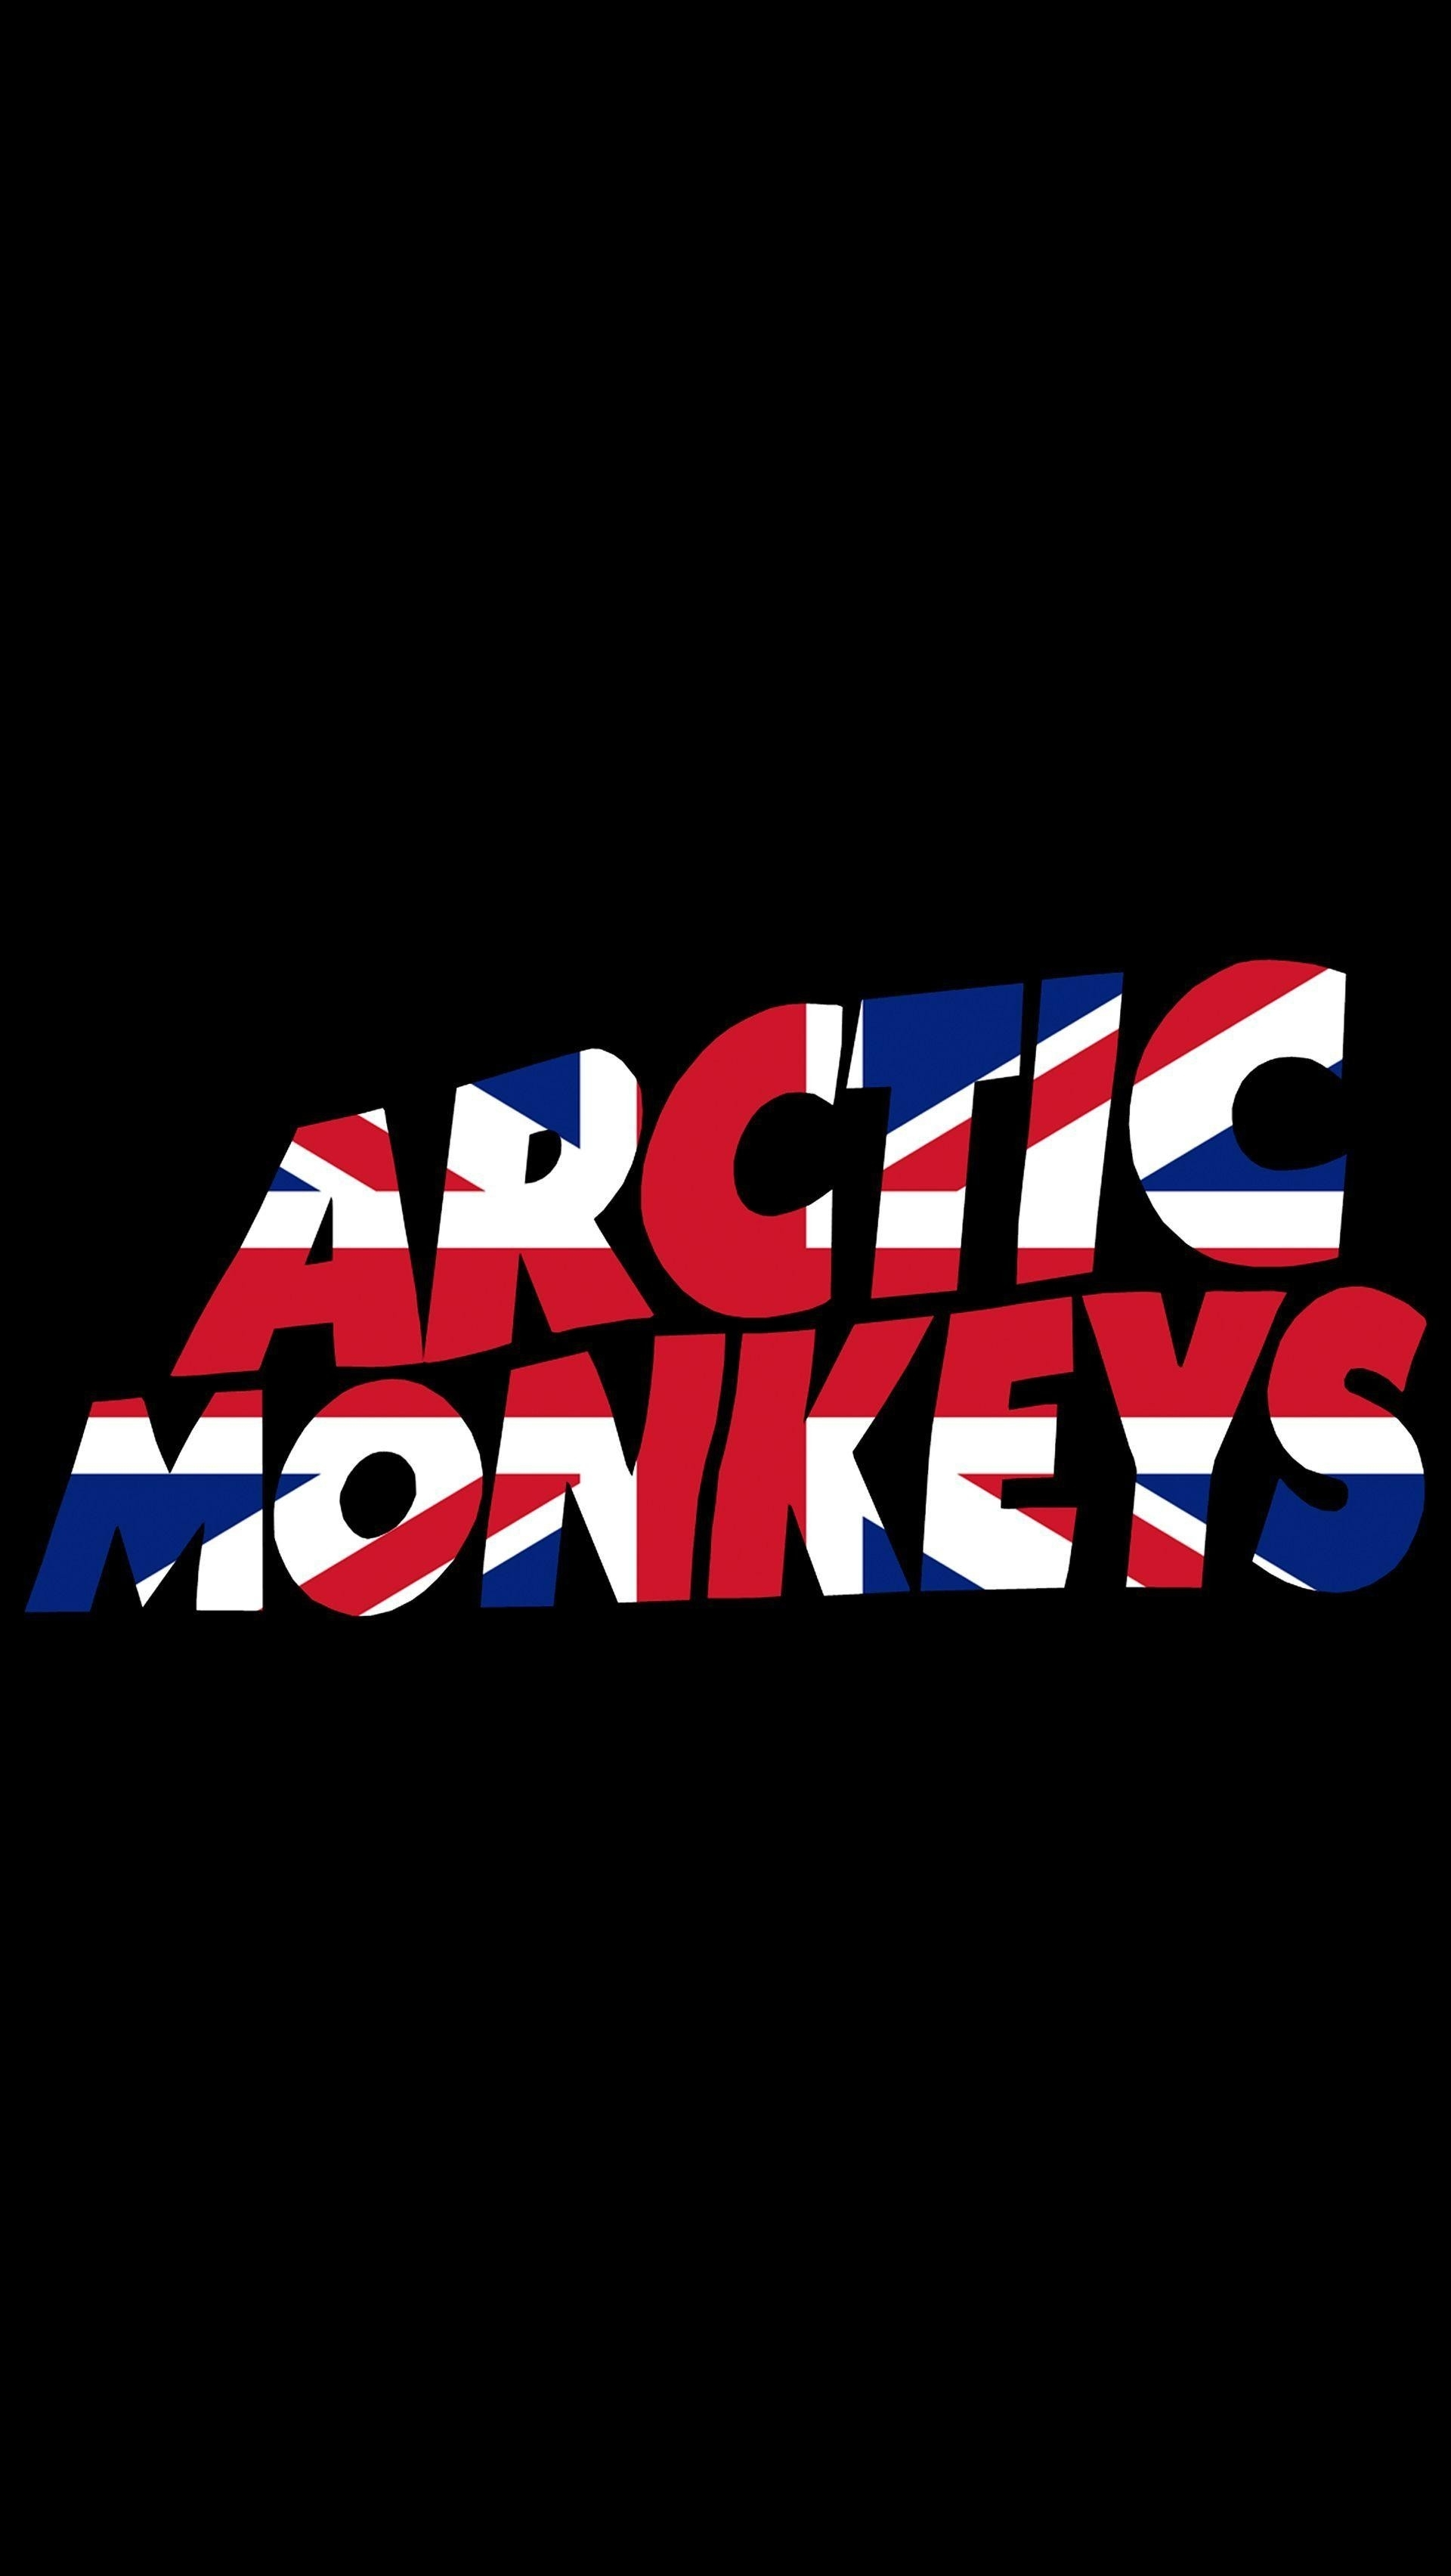 arctic monkeys iphone wallpaper (74+ images)